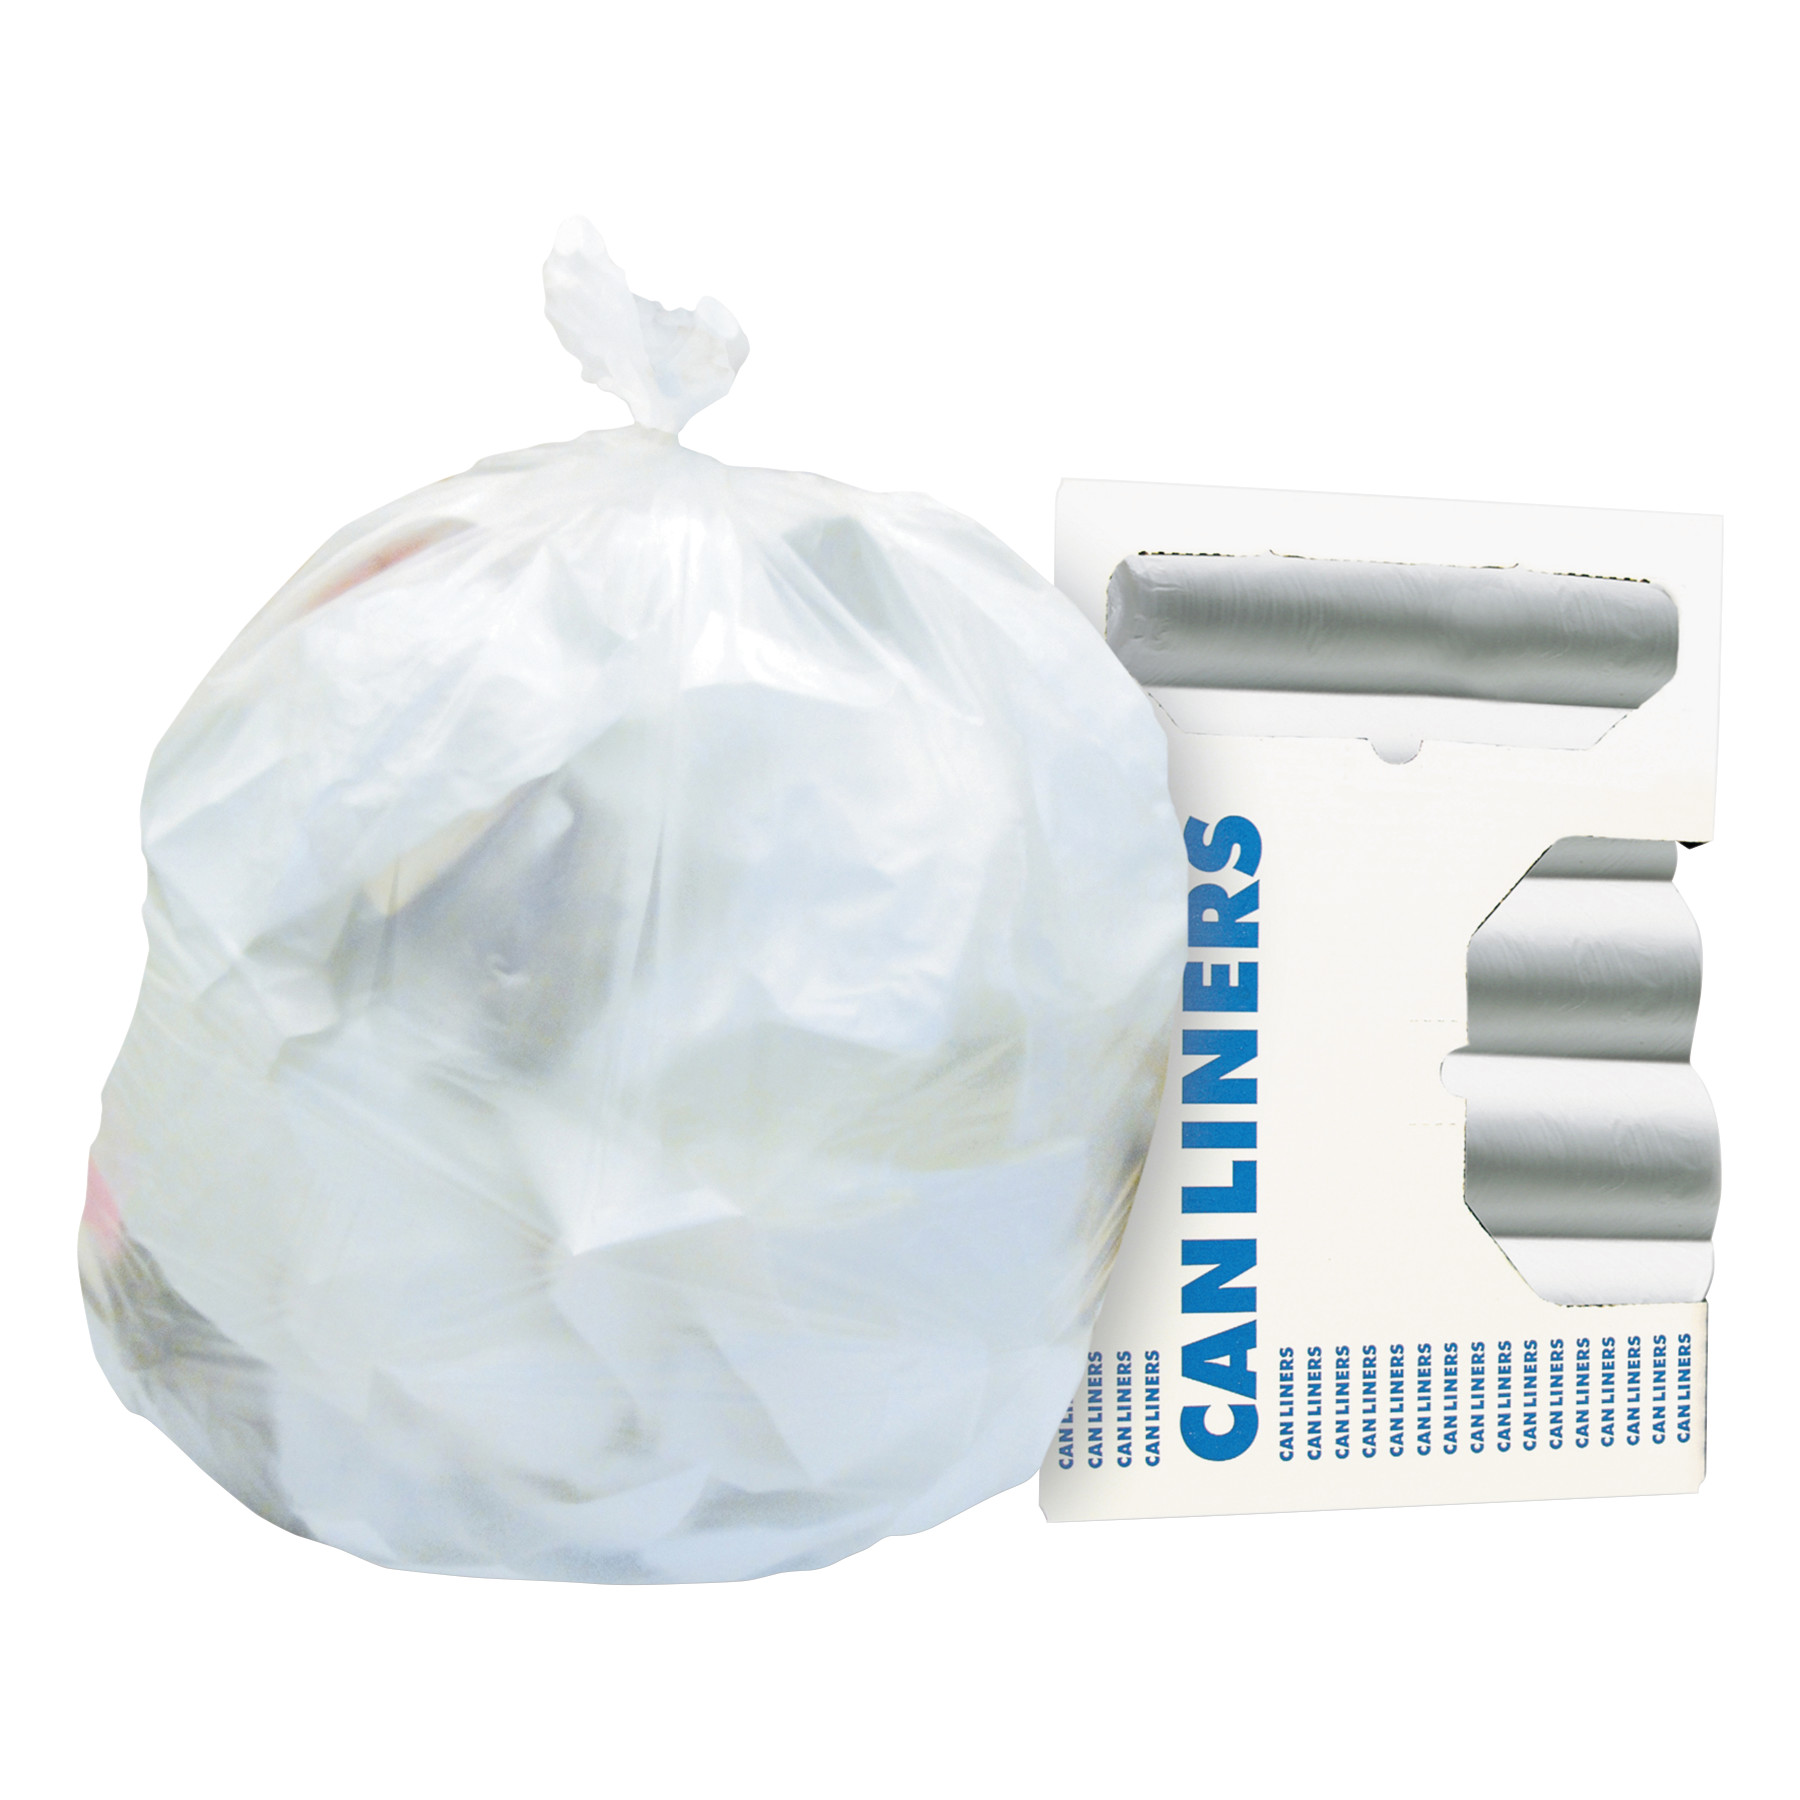 Heritage High-Density Coreless Trash Bags, 33 gal, 12 mic, 33 x 40, Natural, 500/Carton